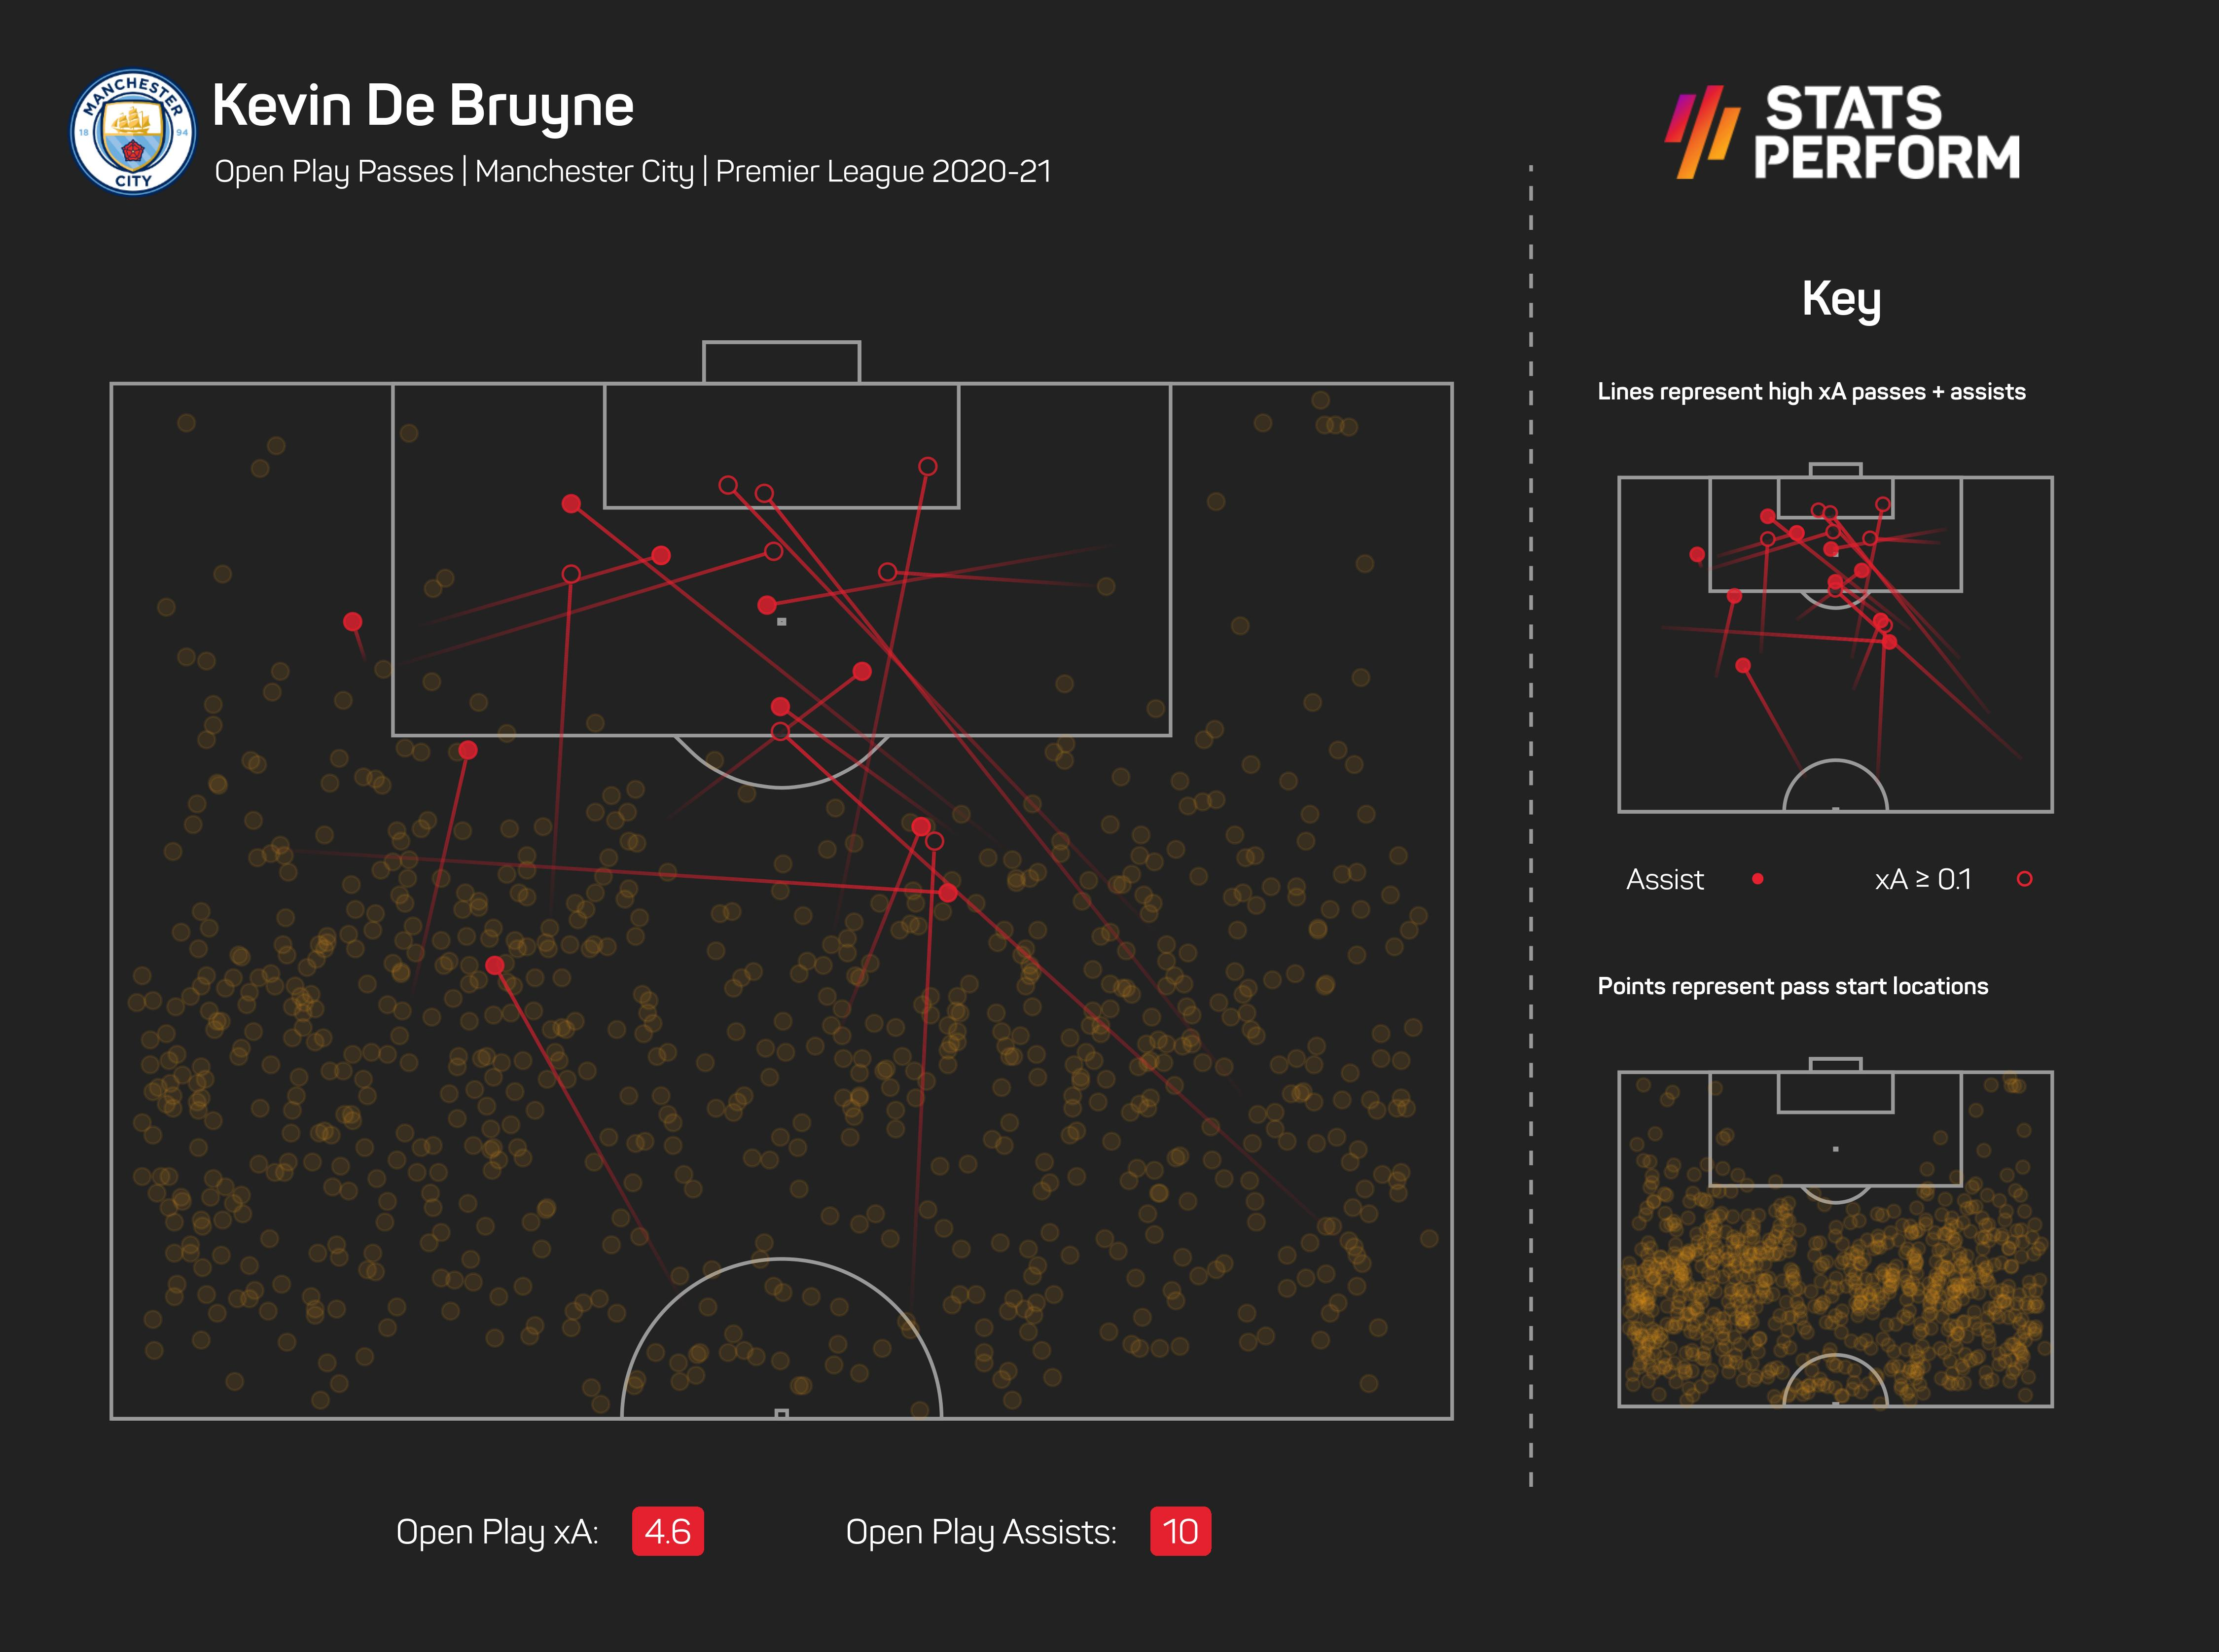 Kevin De Bruyne open-play assists for Manchester City